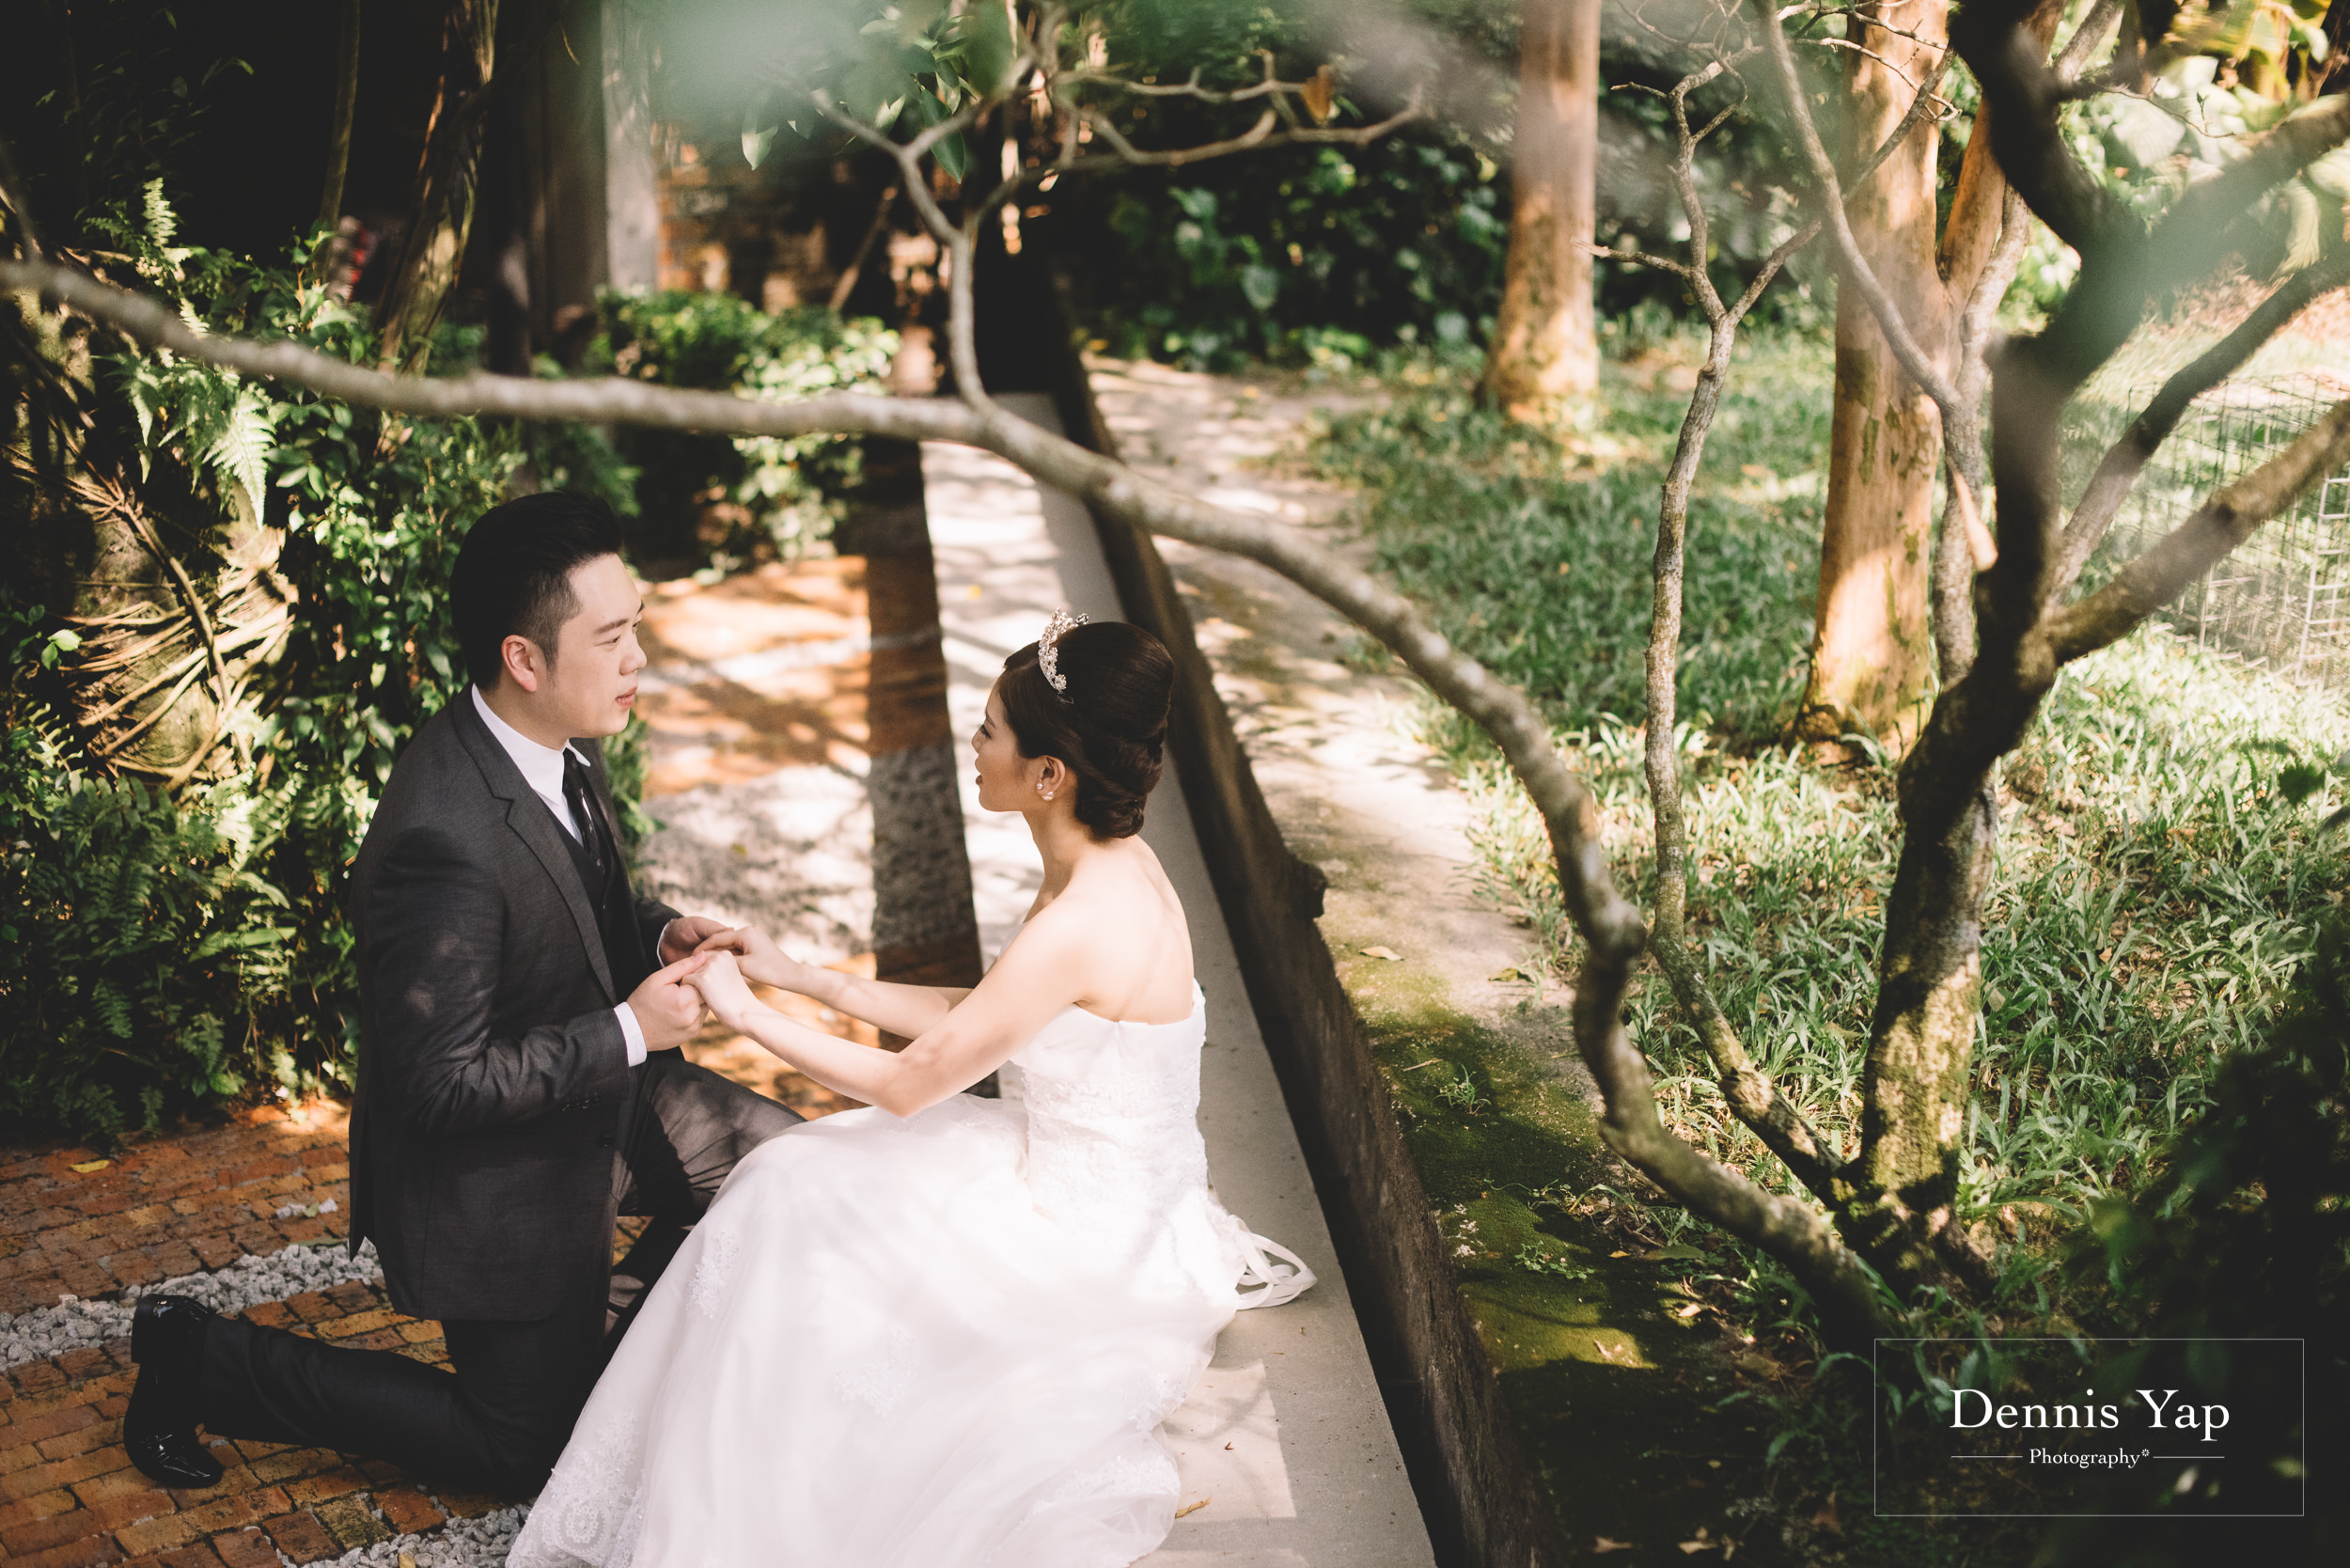 ivan constance pre wedding majestic hotel dennis yap photography luxury style calm serious-14.jpg